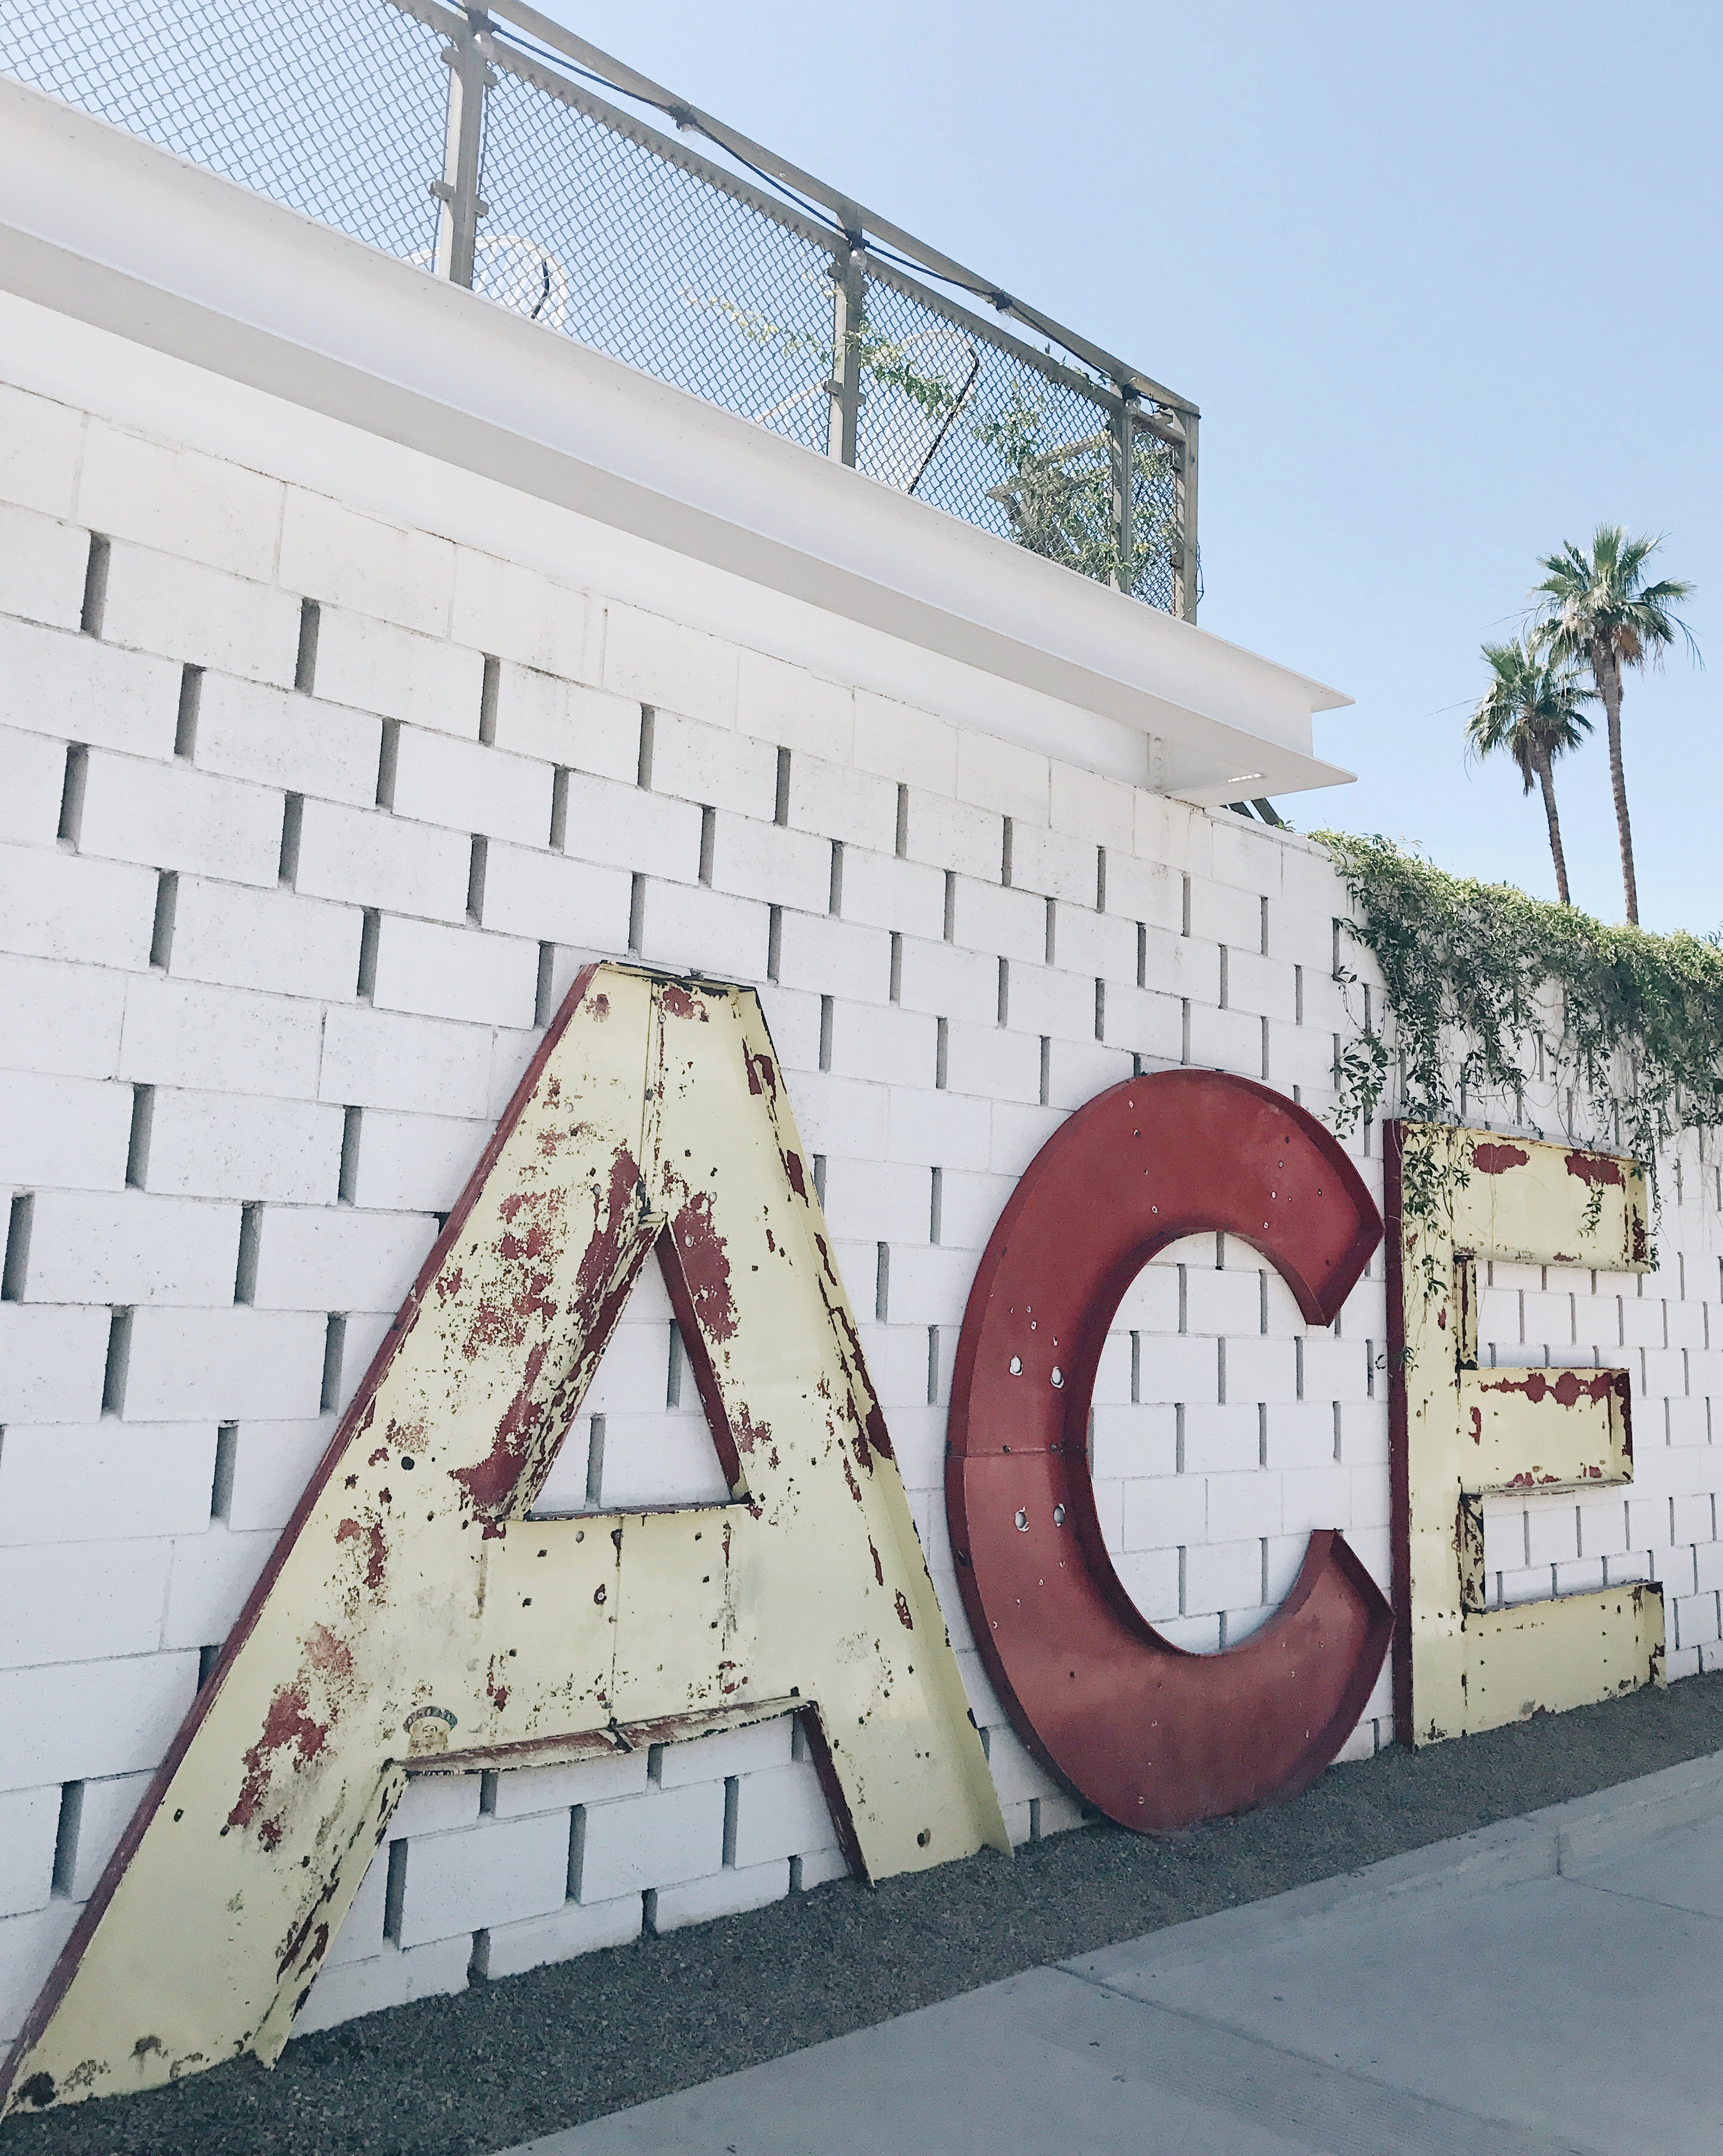 jojotastic travel guide and visual diary for palm springs. the ace hotel